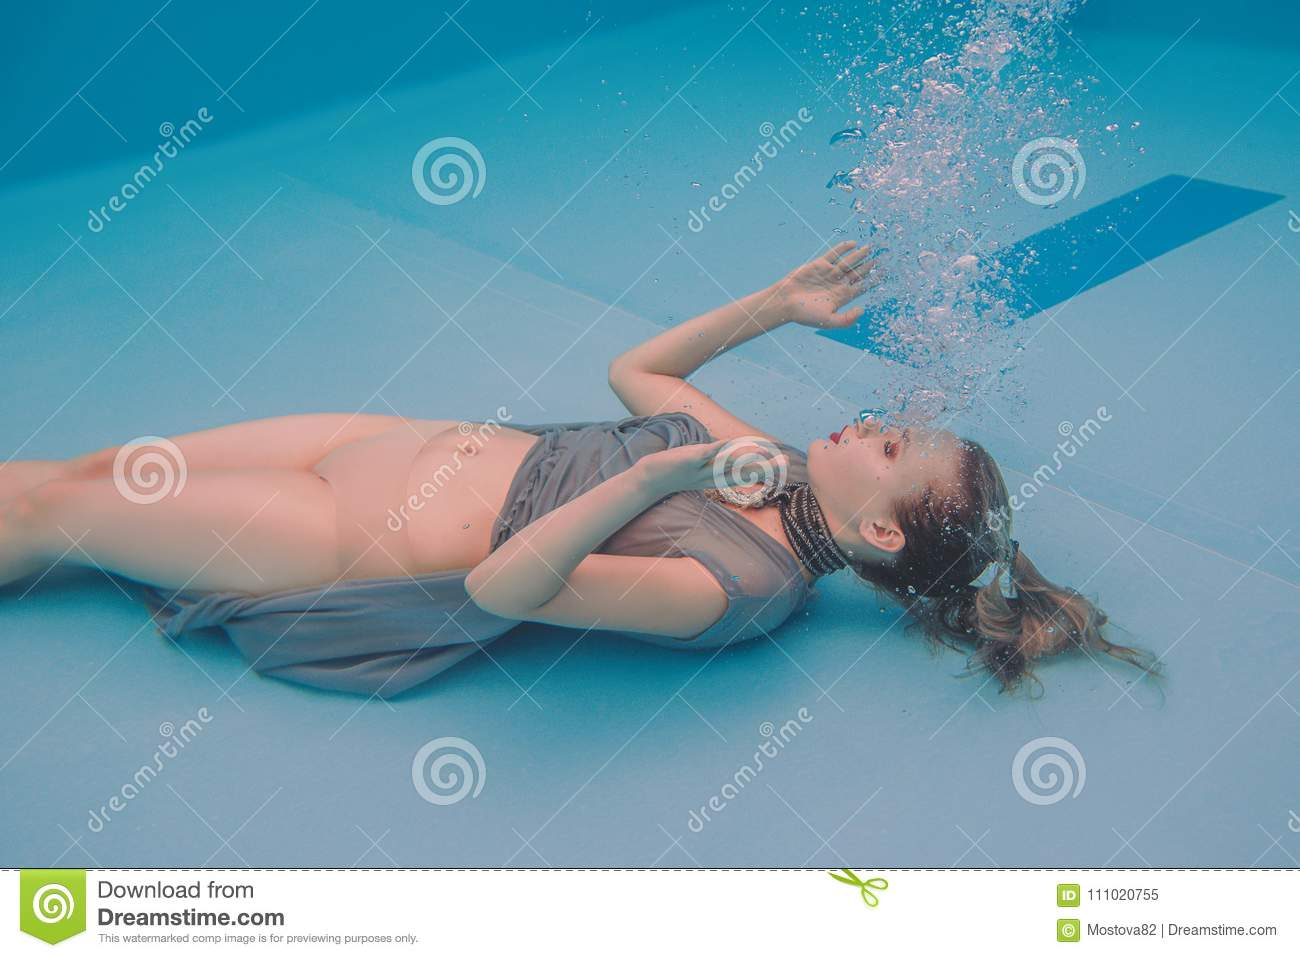 263f19250b Surreal art portrait of young woman in grey dress and beaded scarf  underwater in the swimming pool